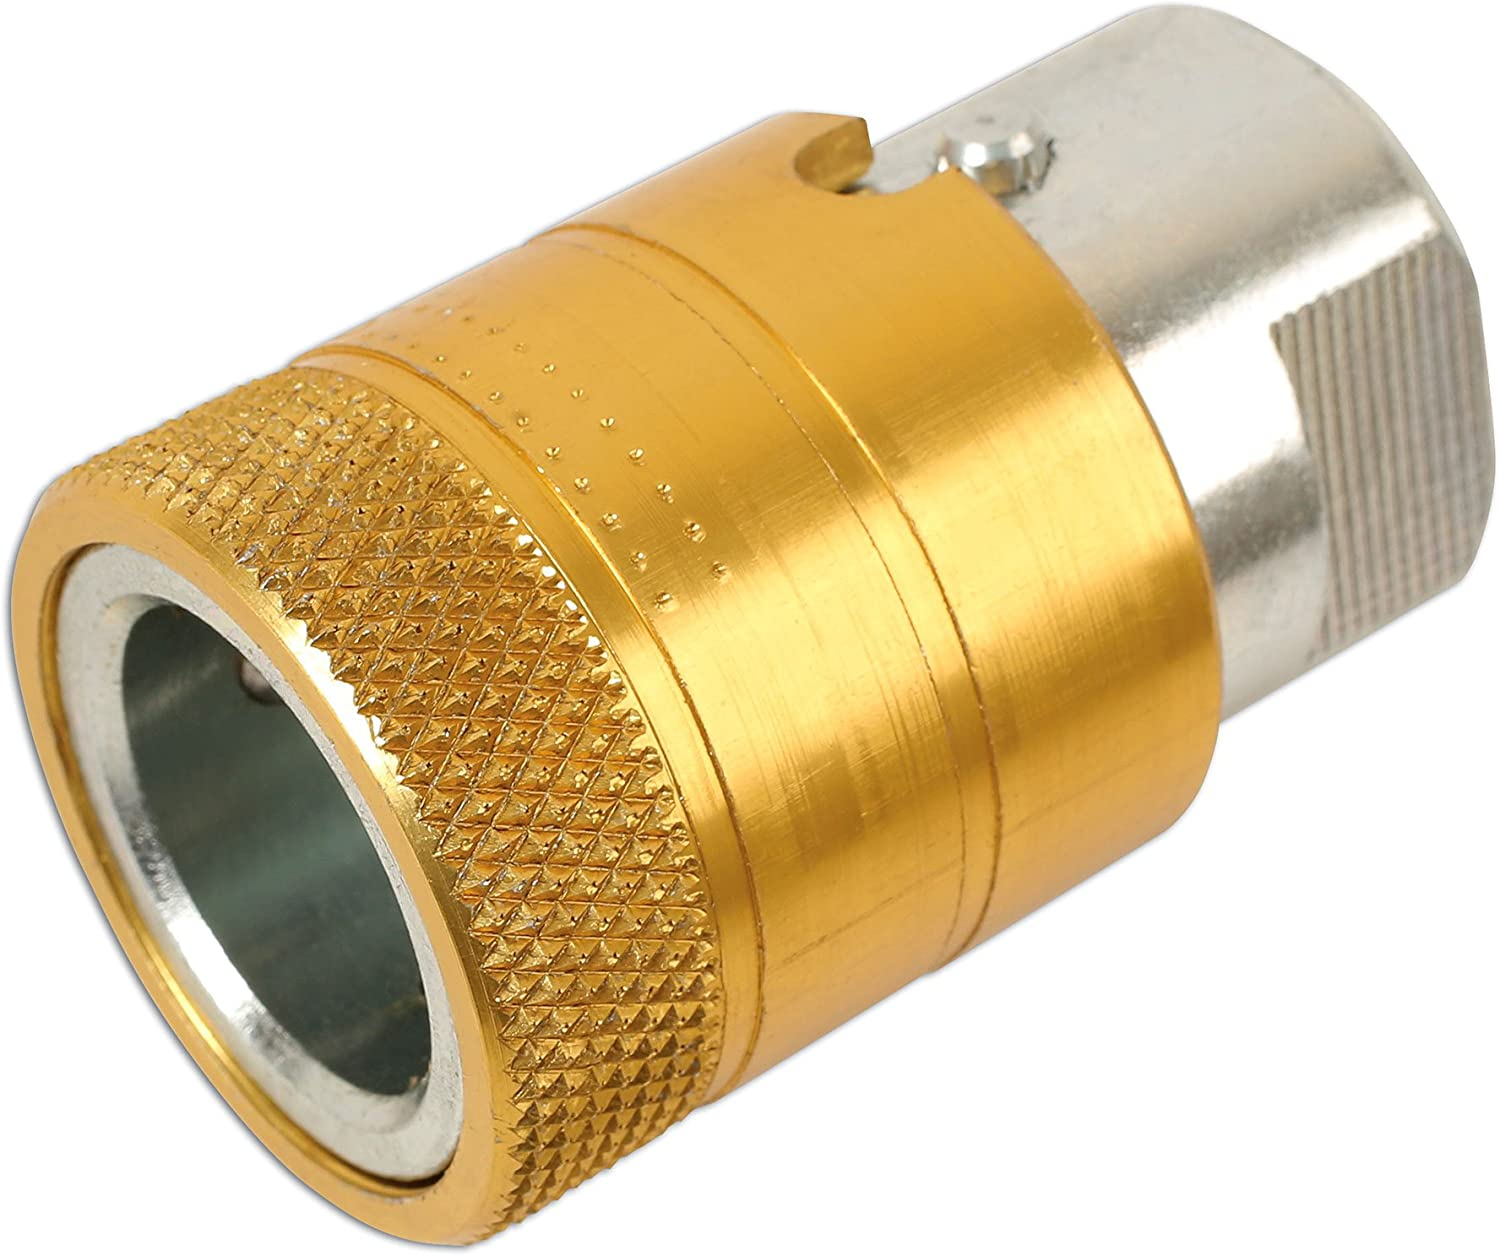 Airbrake Accessory Male C Coupling Pk 1 Connect 39953